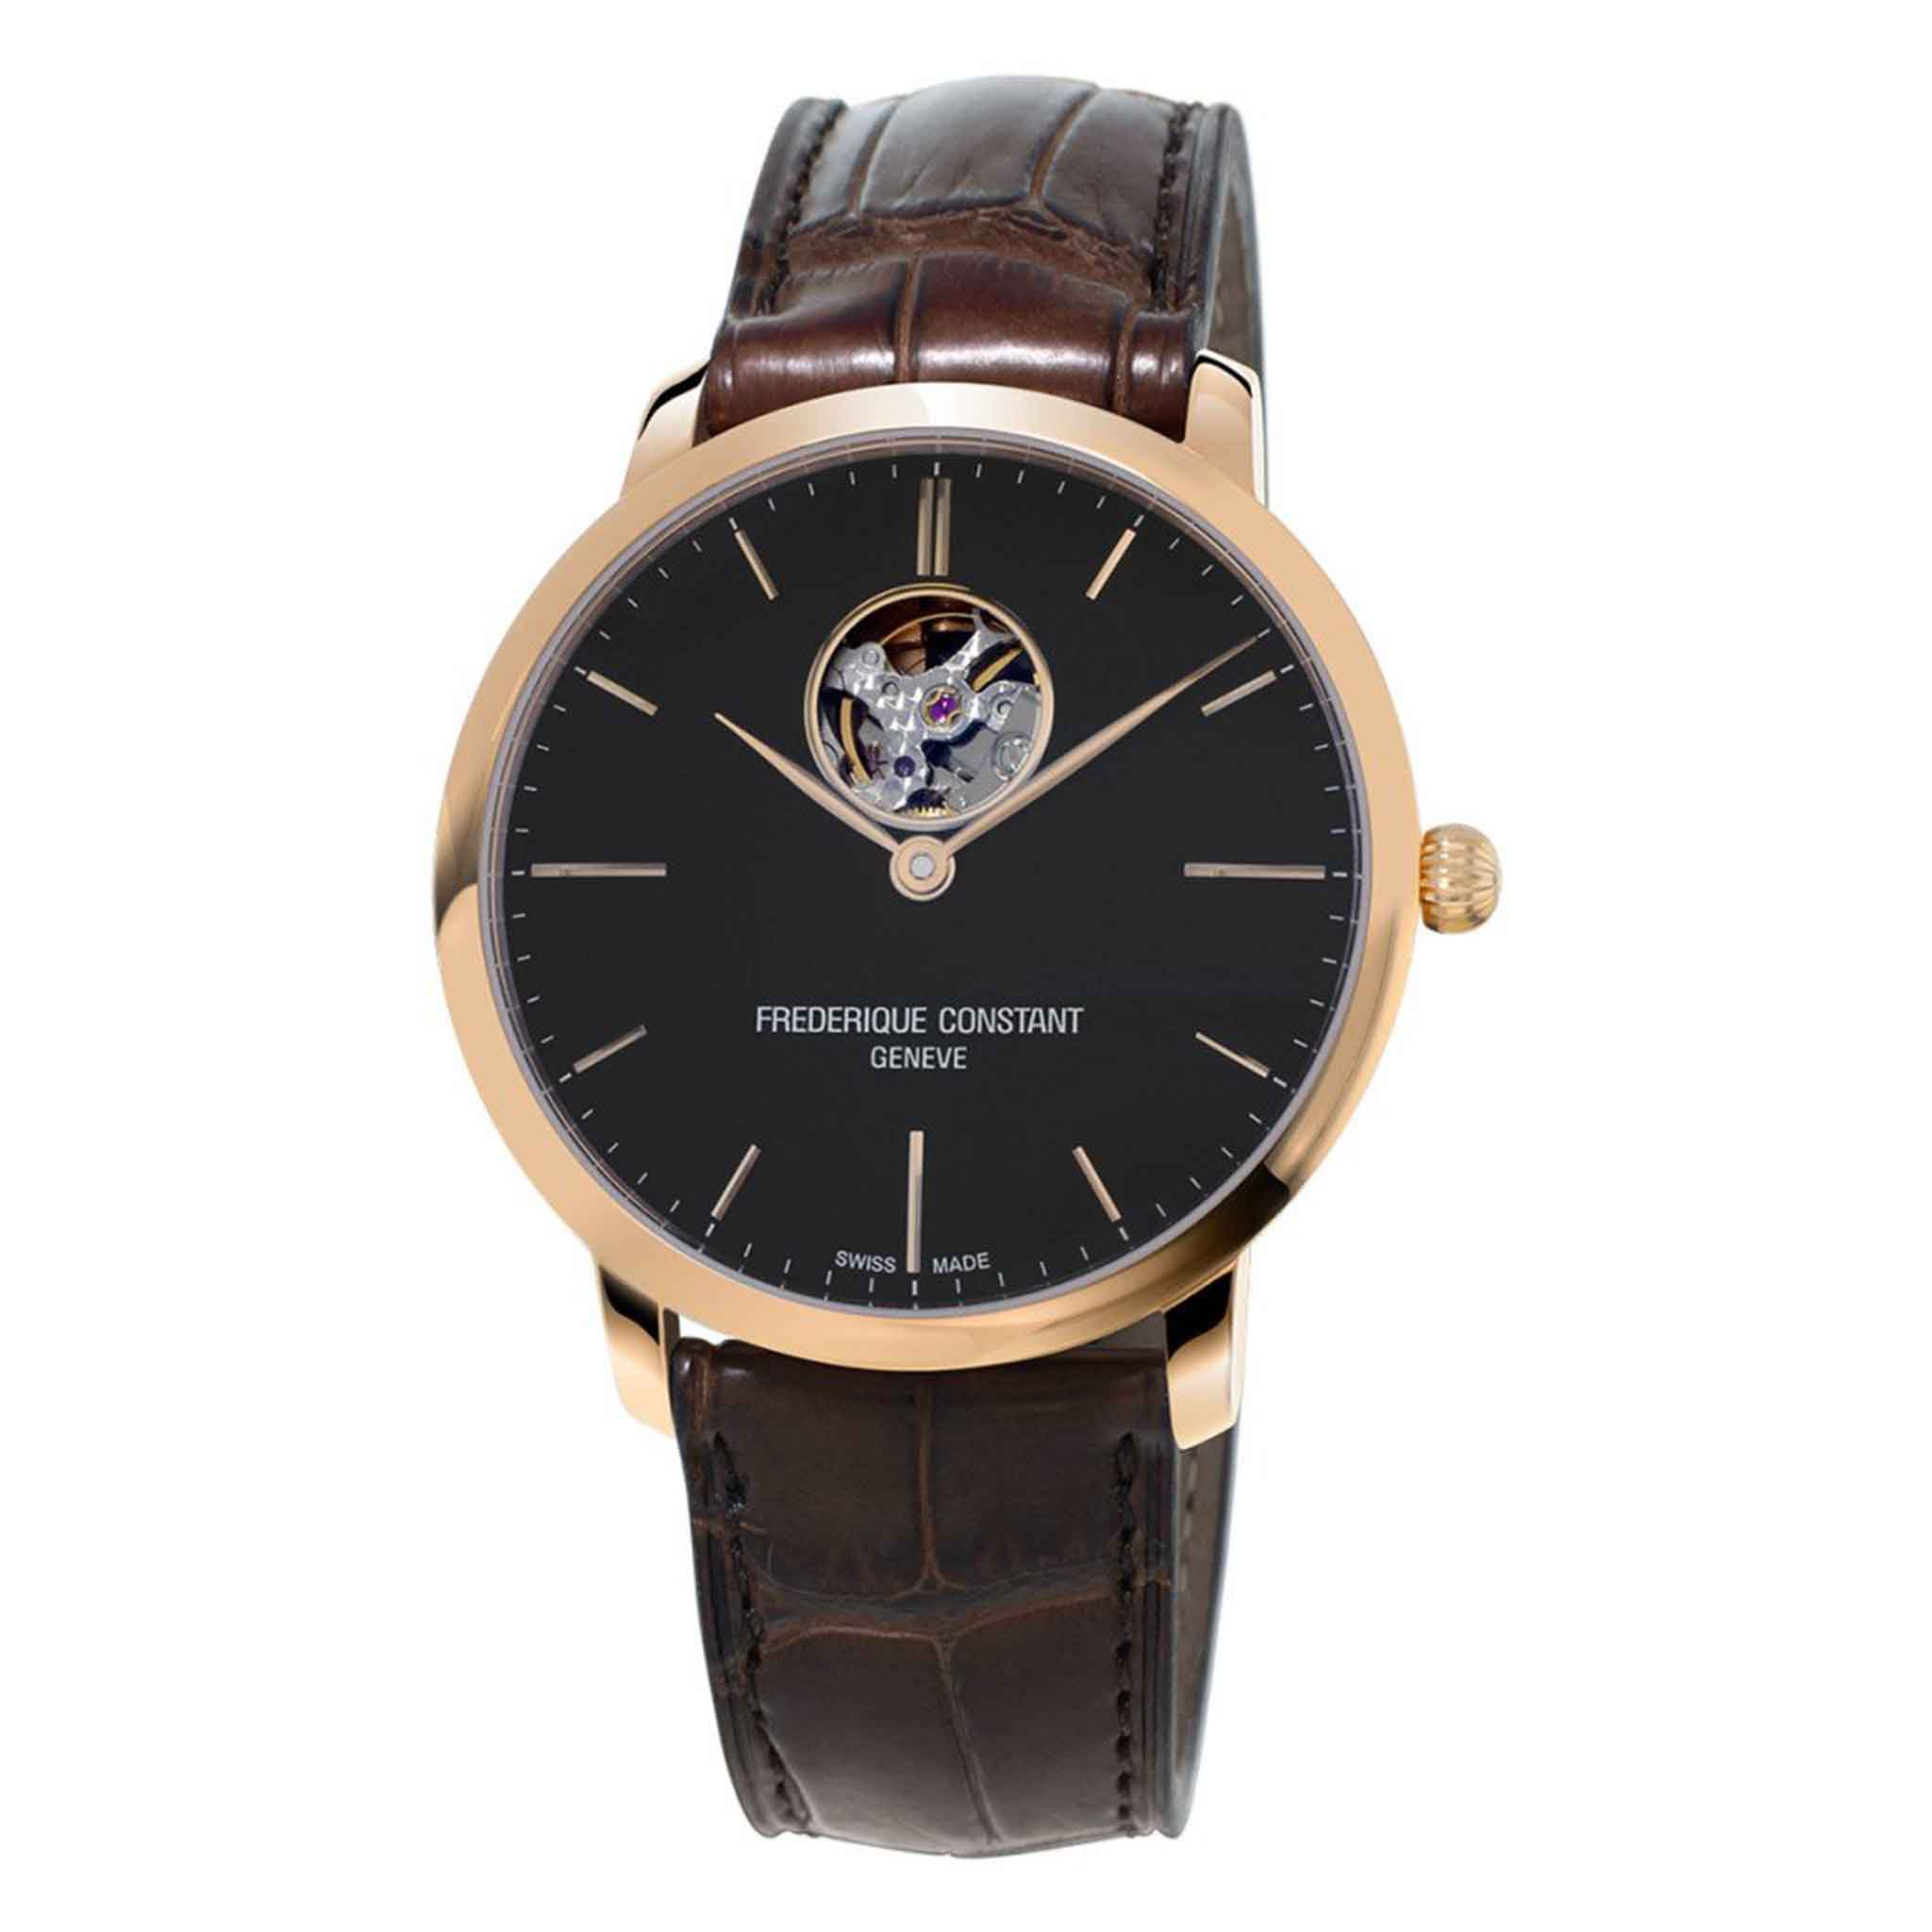 FREDERIQUE CONSTANT SLIMLINE AUTOMATIC 18K GOLD PLATED LEATHER STRAPS FC-312G4S4 - Thép không gỉ bọc vàng (Gold Plated)